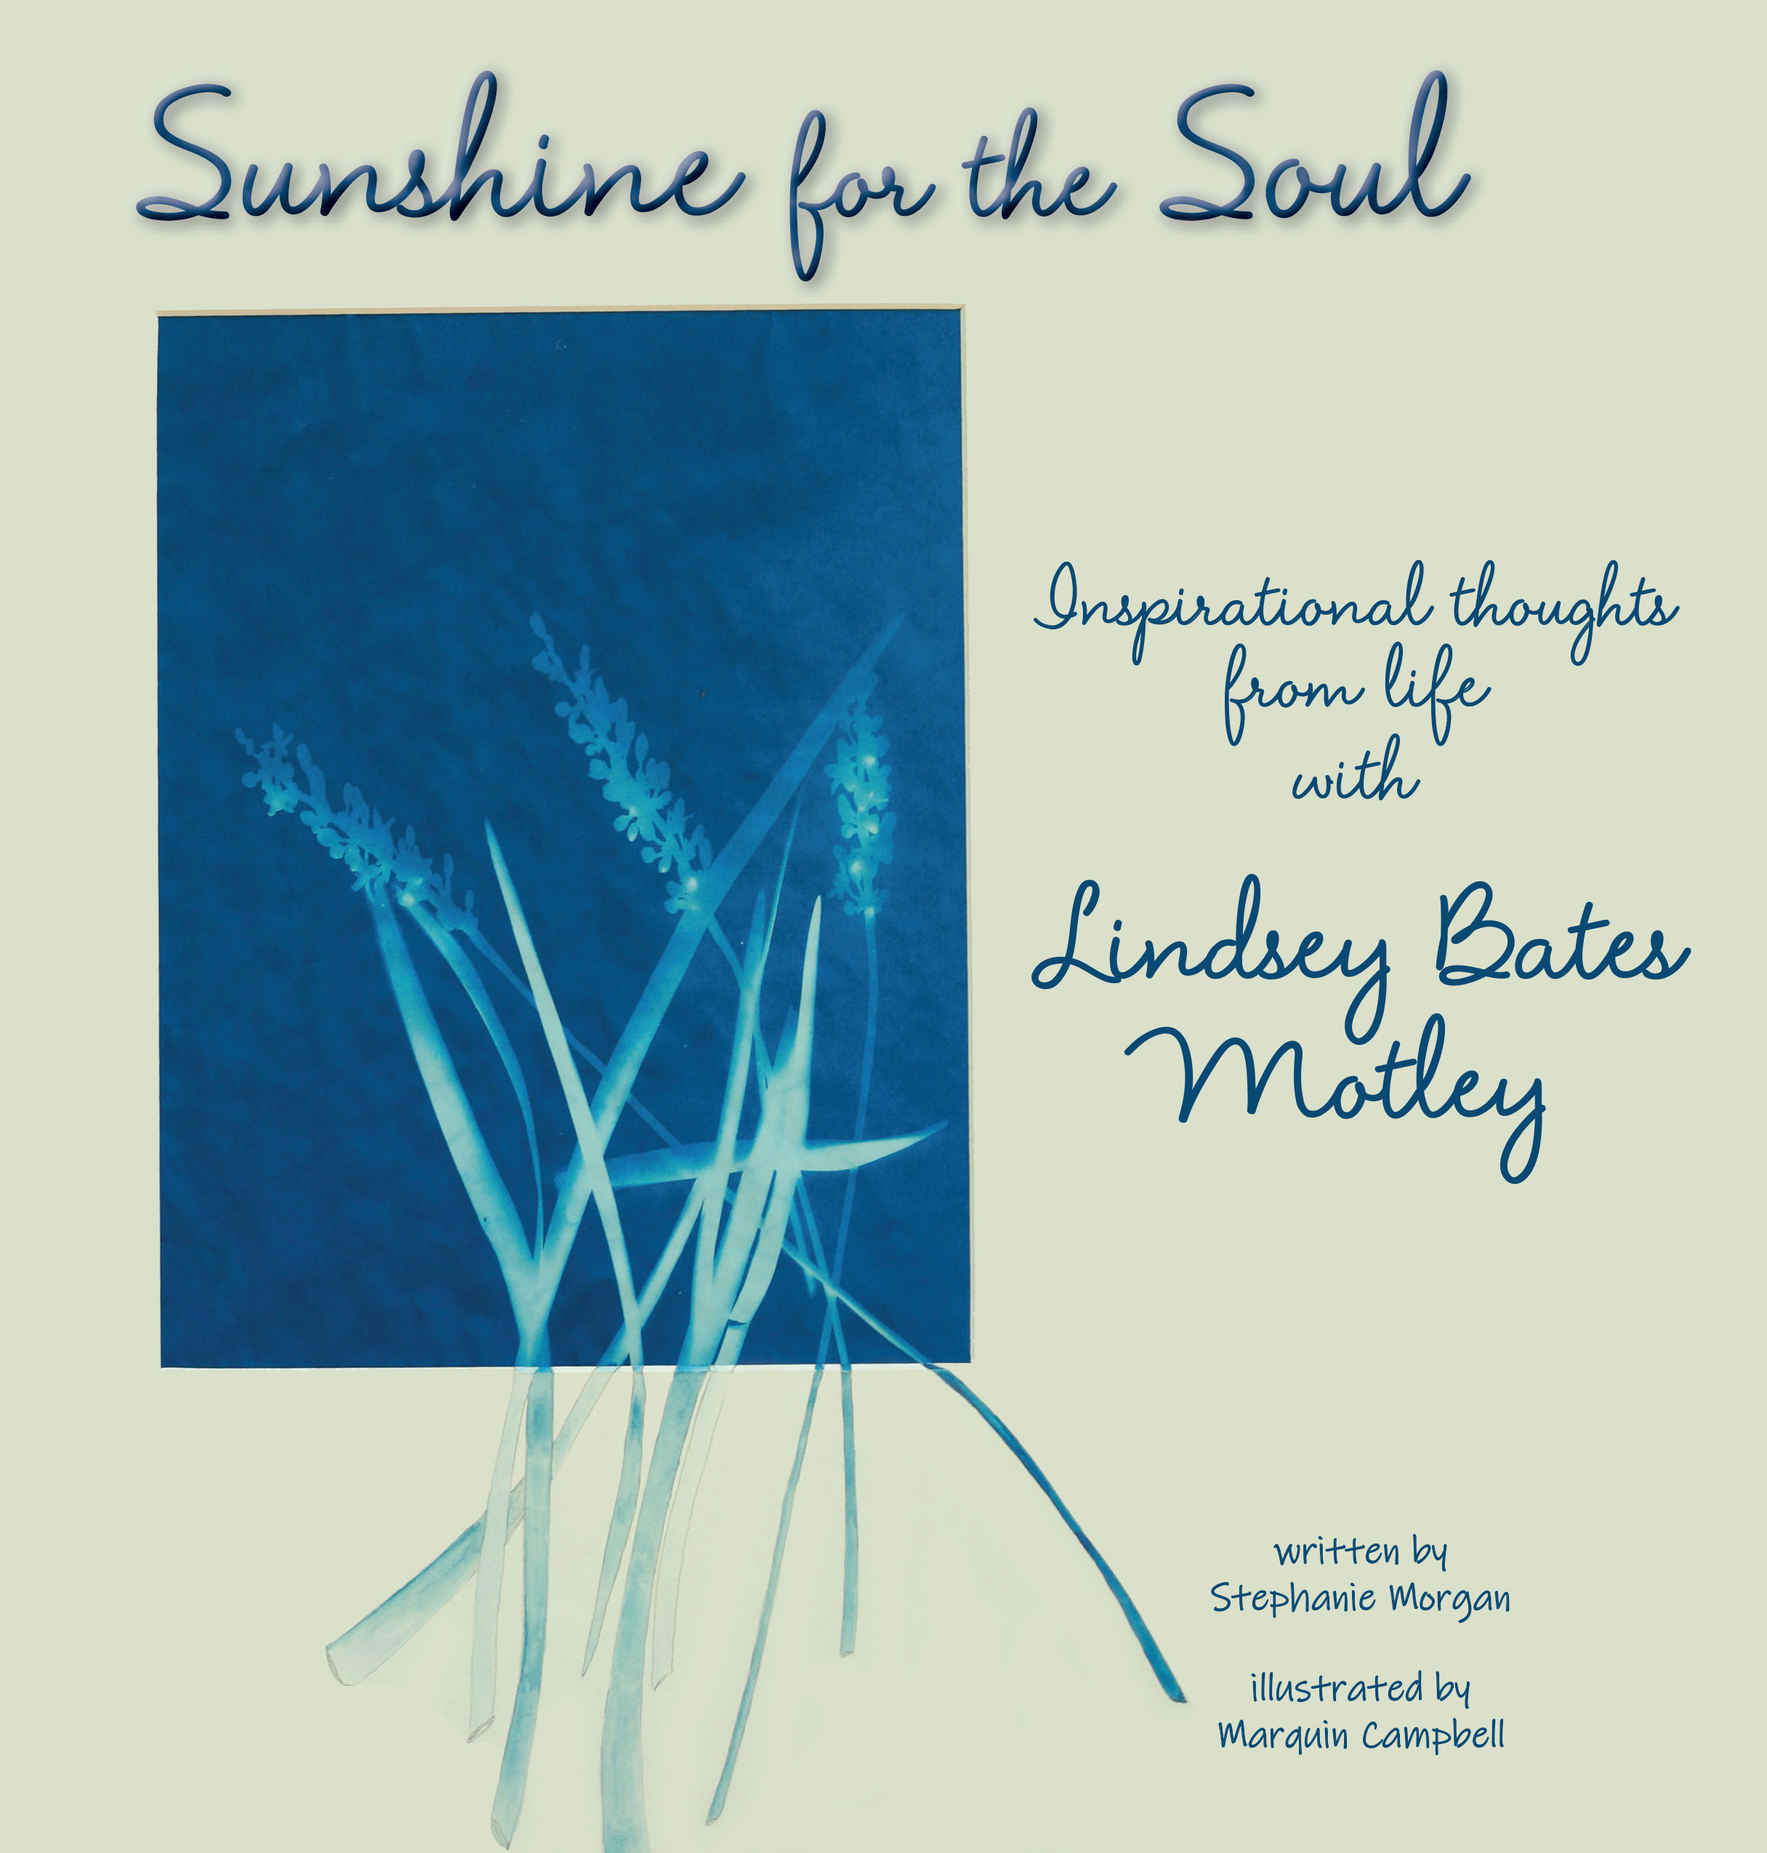 Sunshine for the Soul, Inspirational thoughts from life with Lindsey Bates Motley image